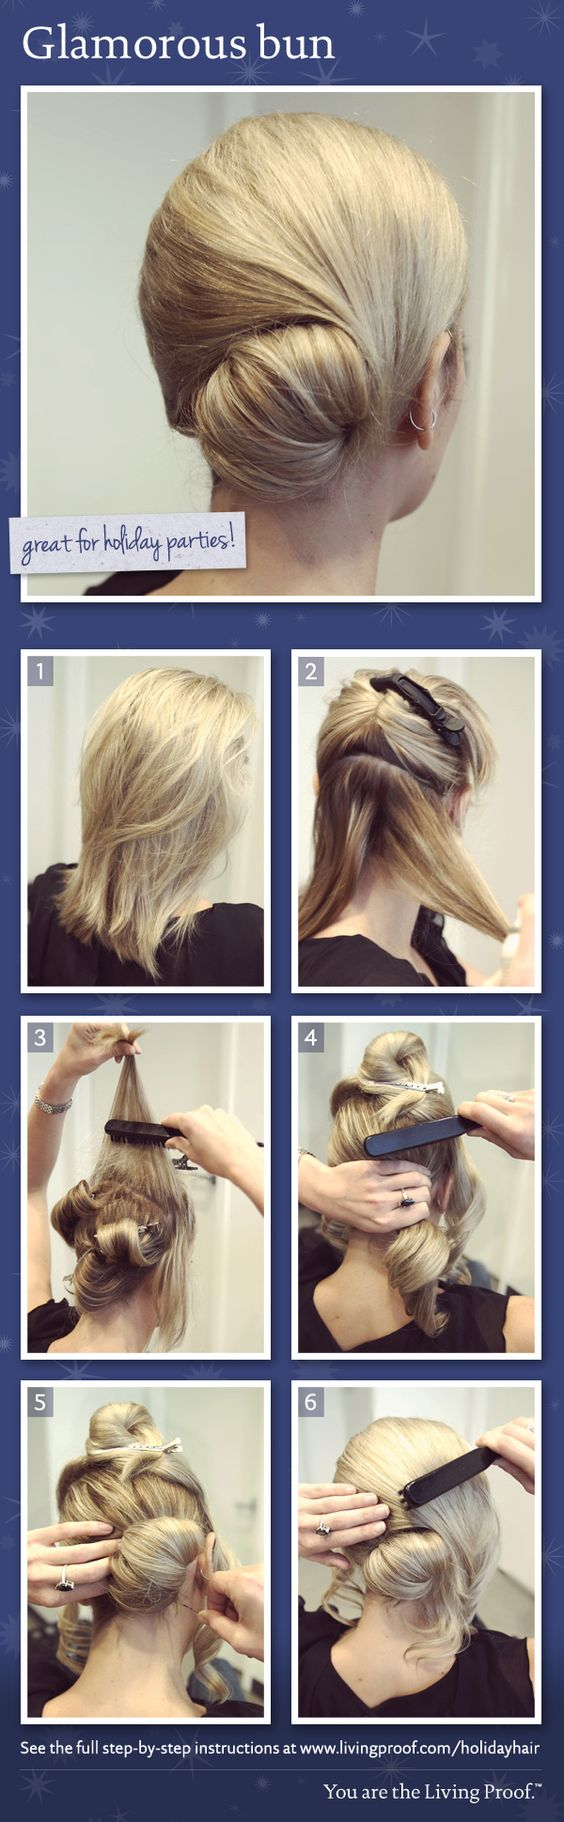 Living proof holiday hair styles glamorous bun hairstyles